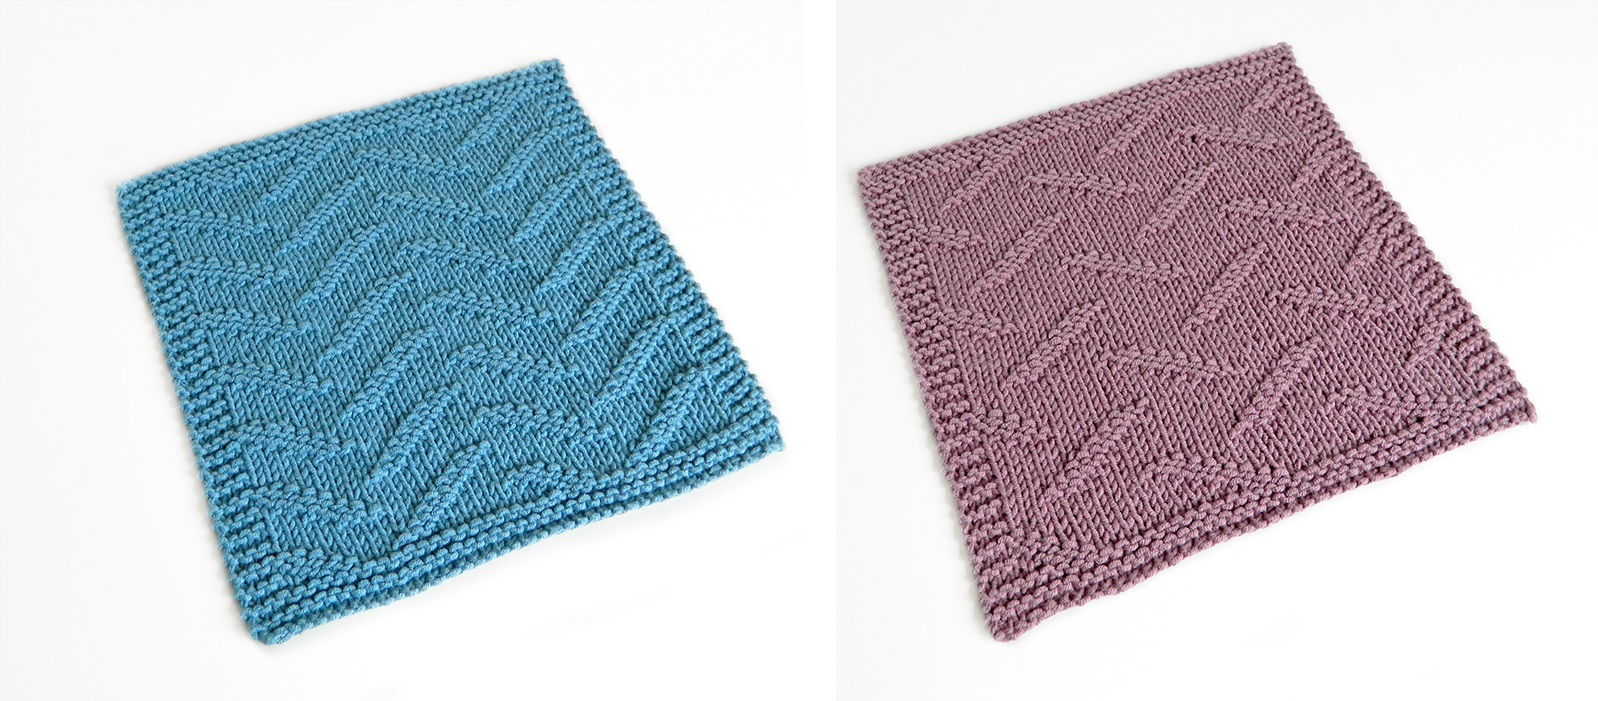 BROKEN stitch knitting pattern 52 SQUARE PICKUP knitted blanket BROKEN knitting pattern OhLaLana dishcloth free pattern